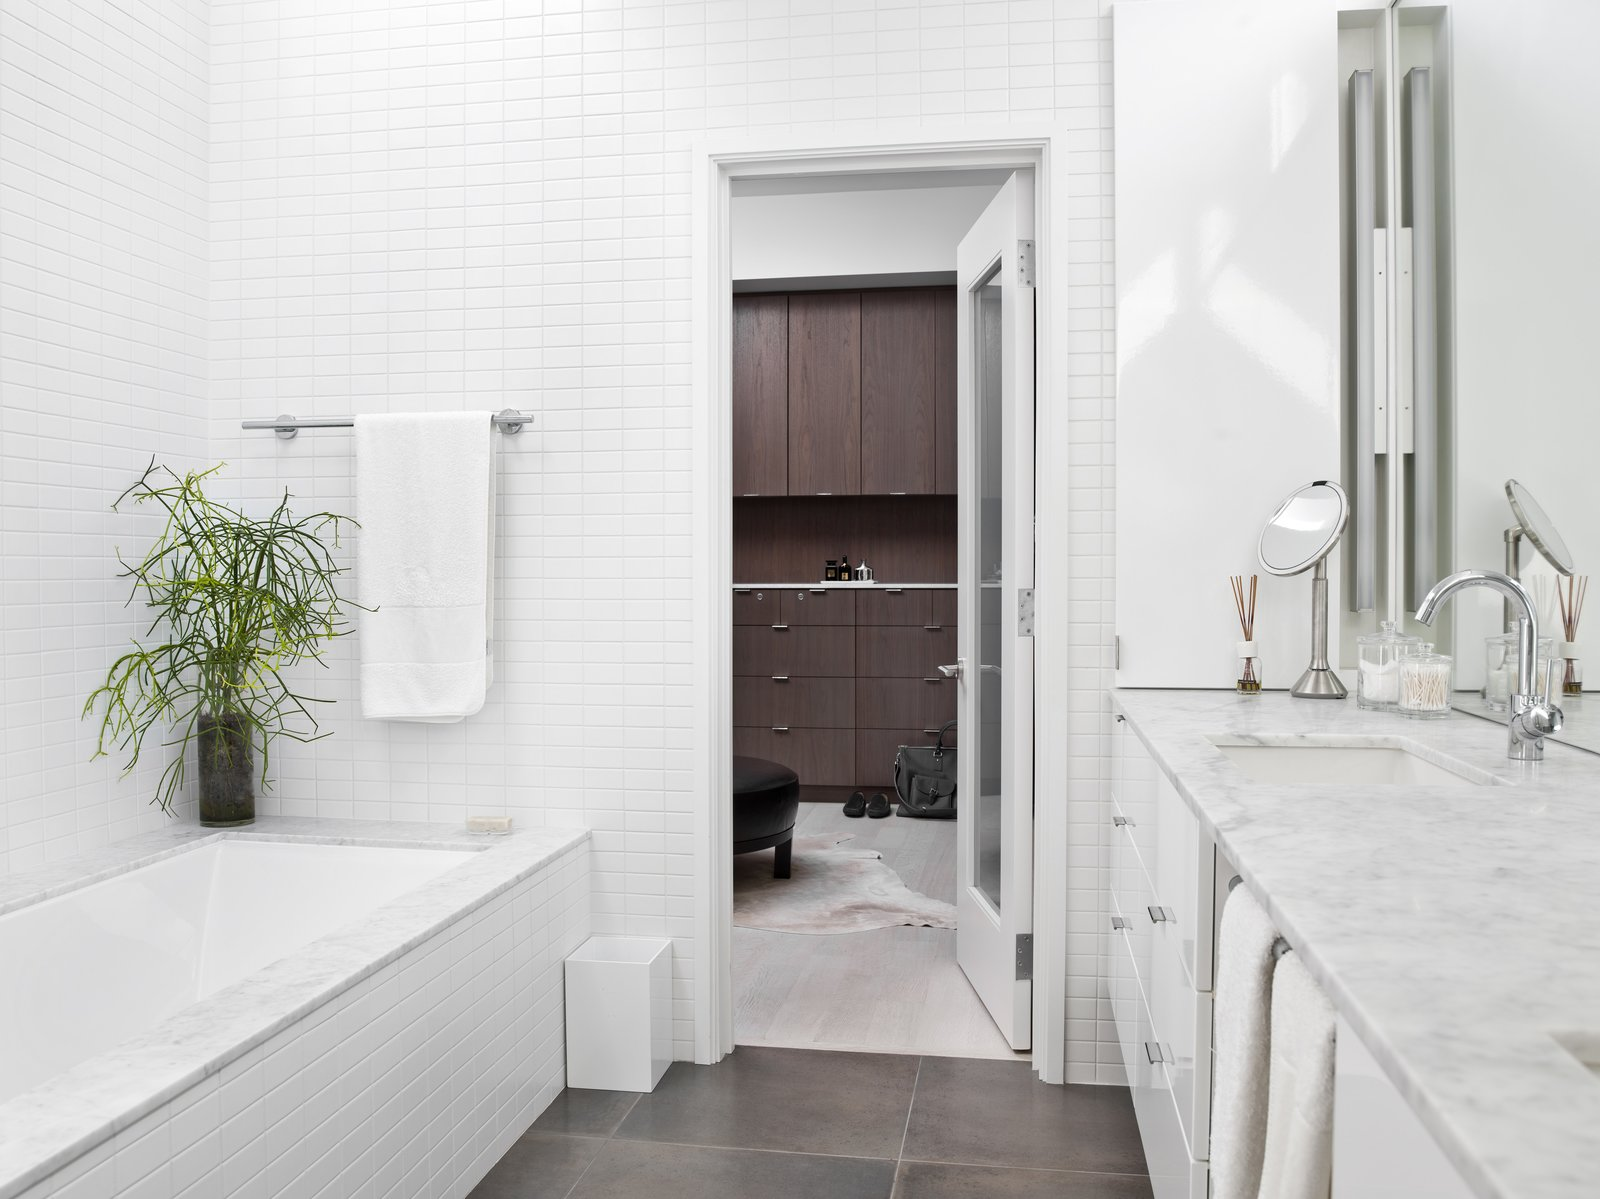 Bath, Porcelain Tile, Undermount, Alcove, Wall, Undermount, Ceramic Tile, Whirlpool, and Marble  Best Bath Wall Undermount Porcelain Tile Marble Photos from Eastwood Residence